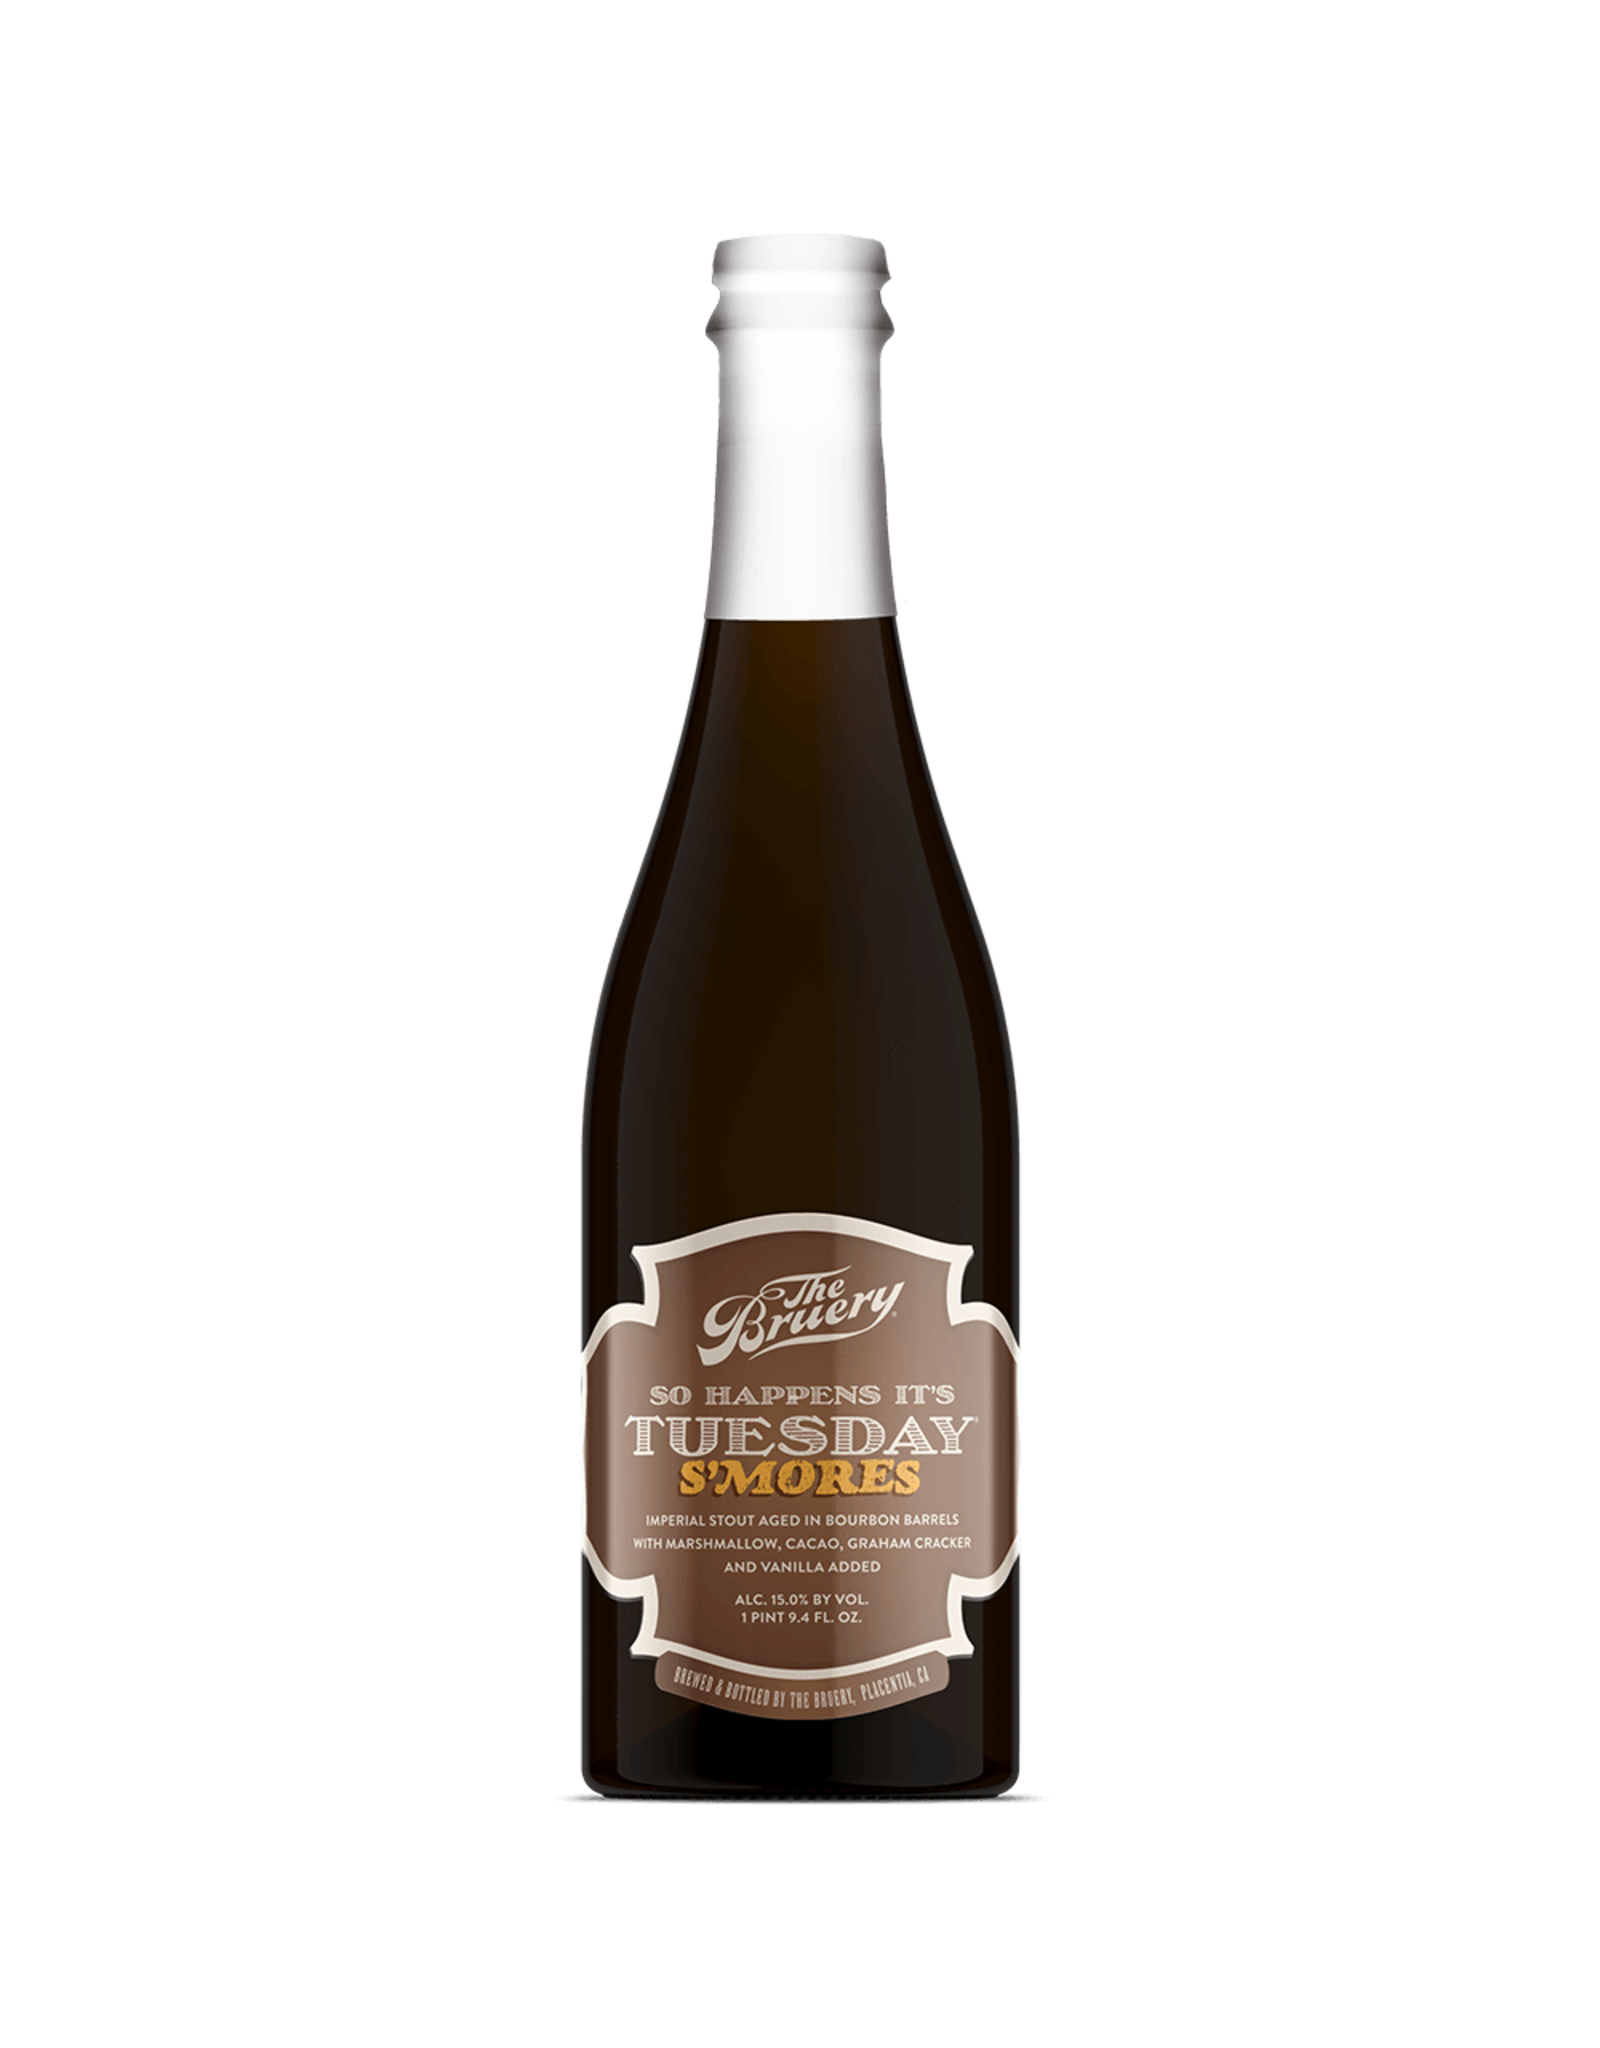 The Bruery - So Happens It's Tuesday S'mores 75cl